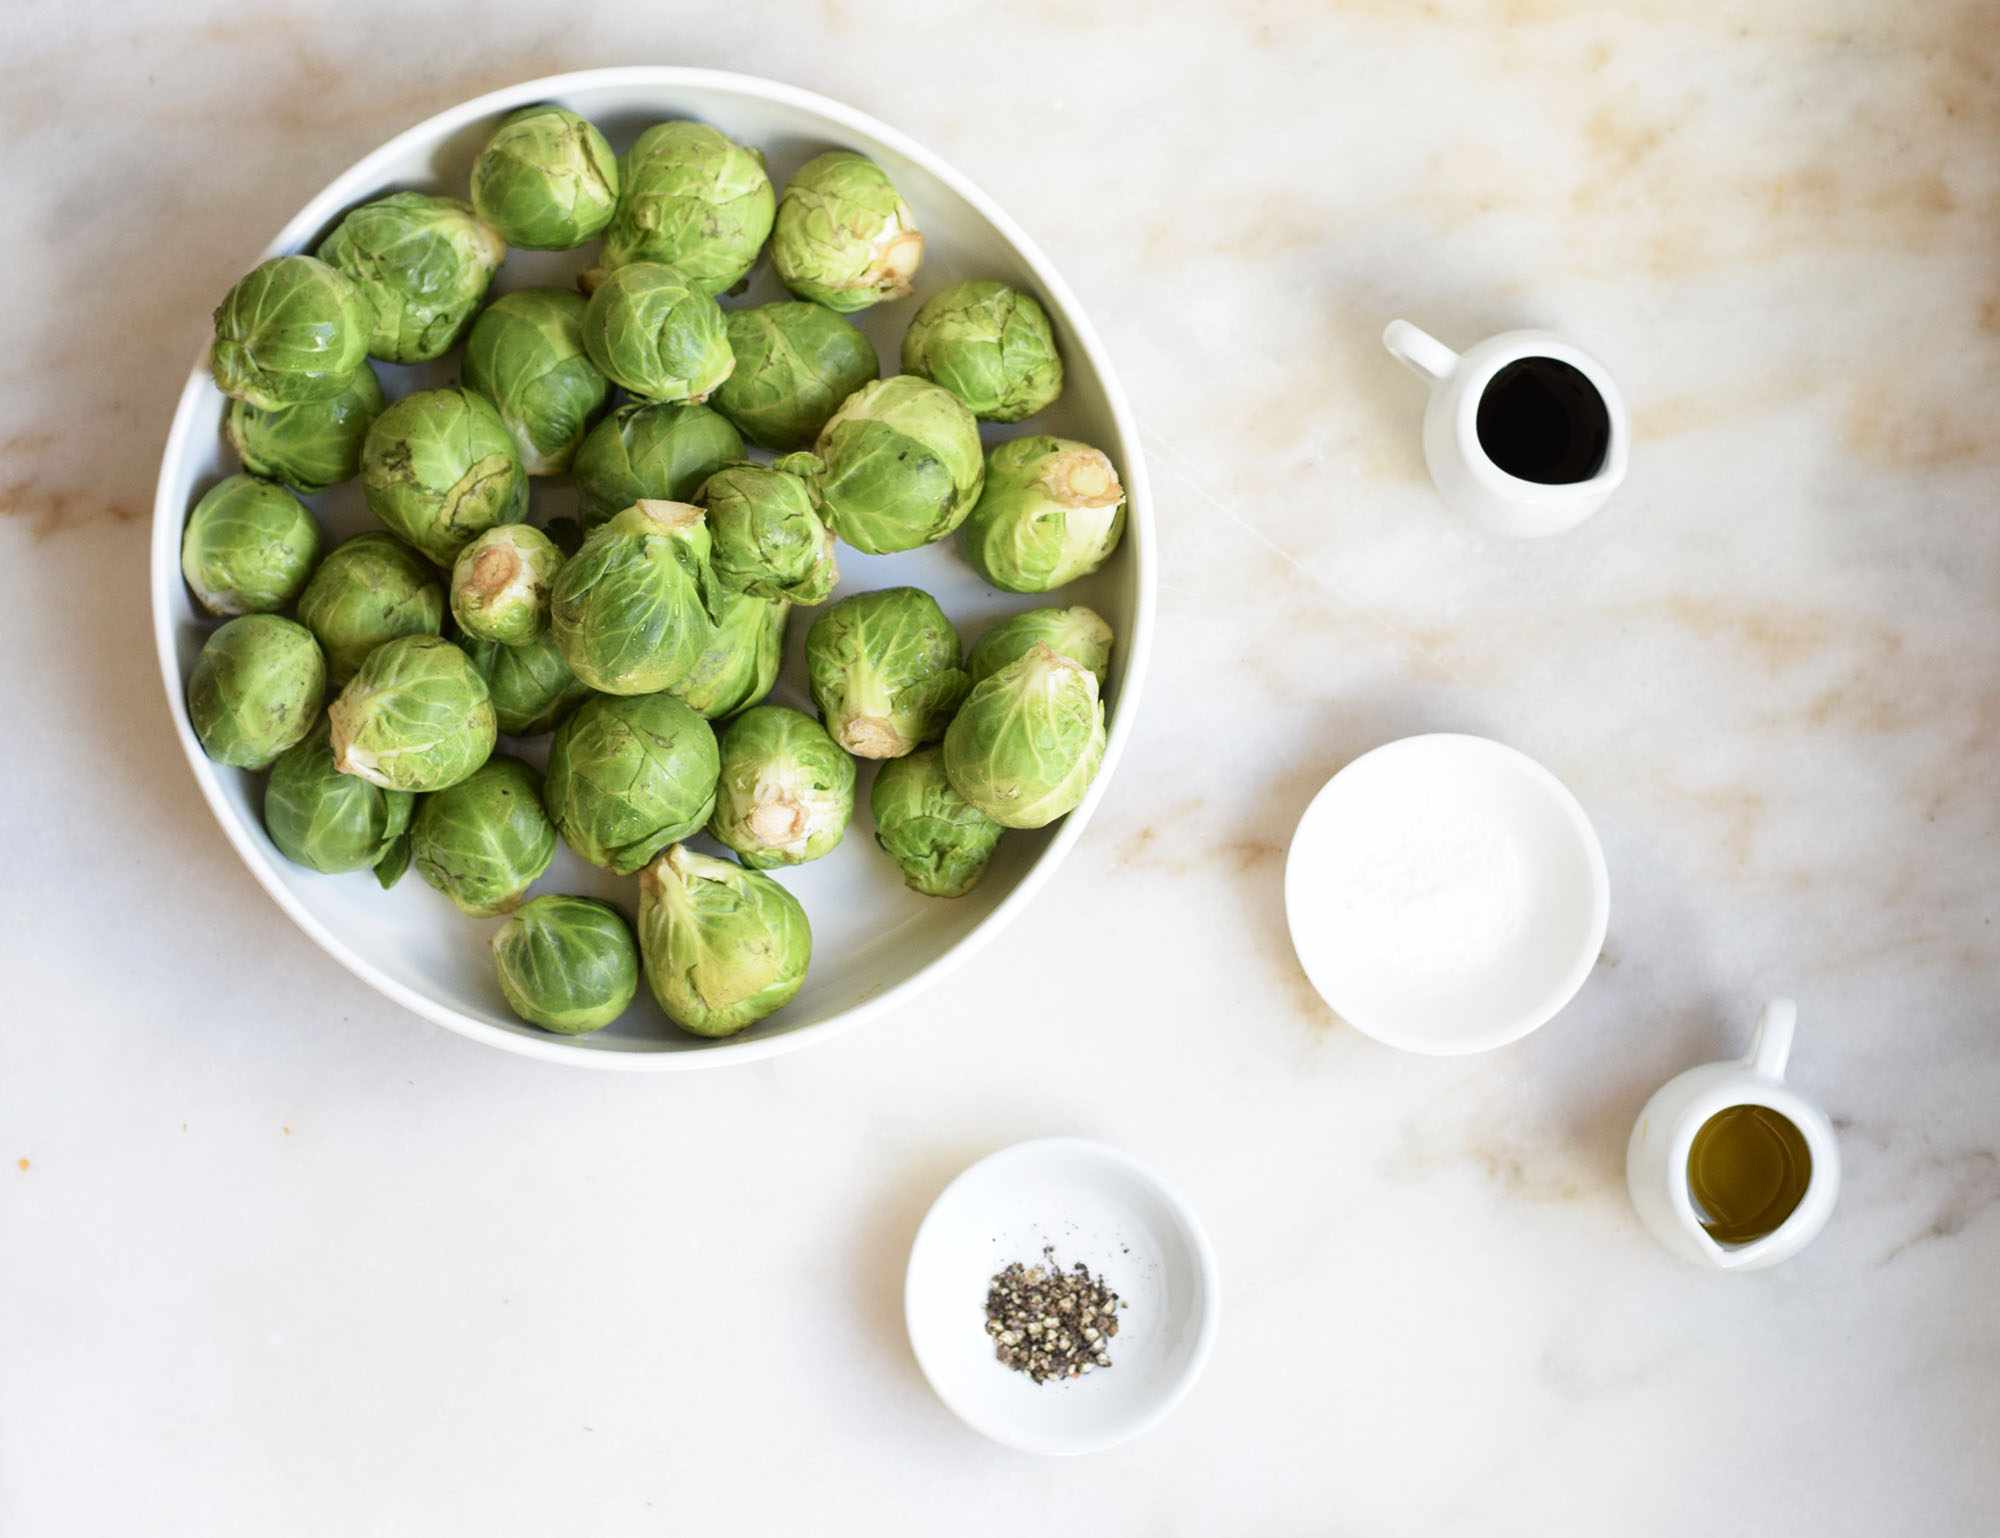 Ingredients for making roasted Brussels sprouts